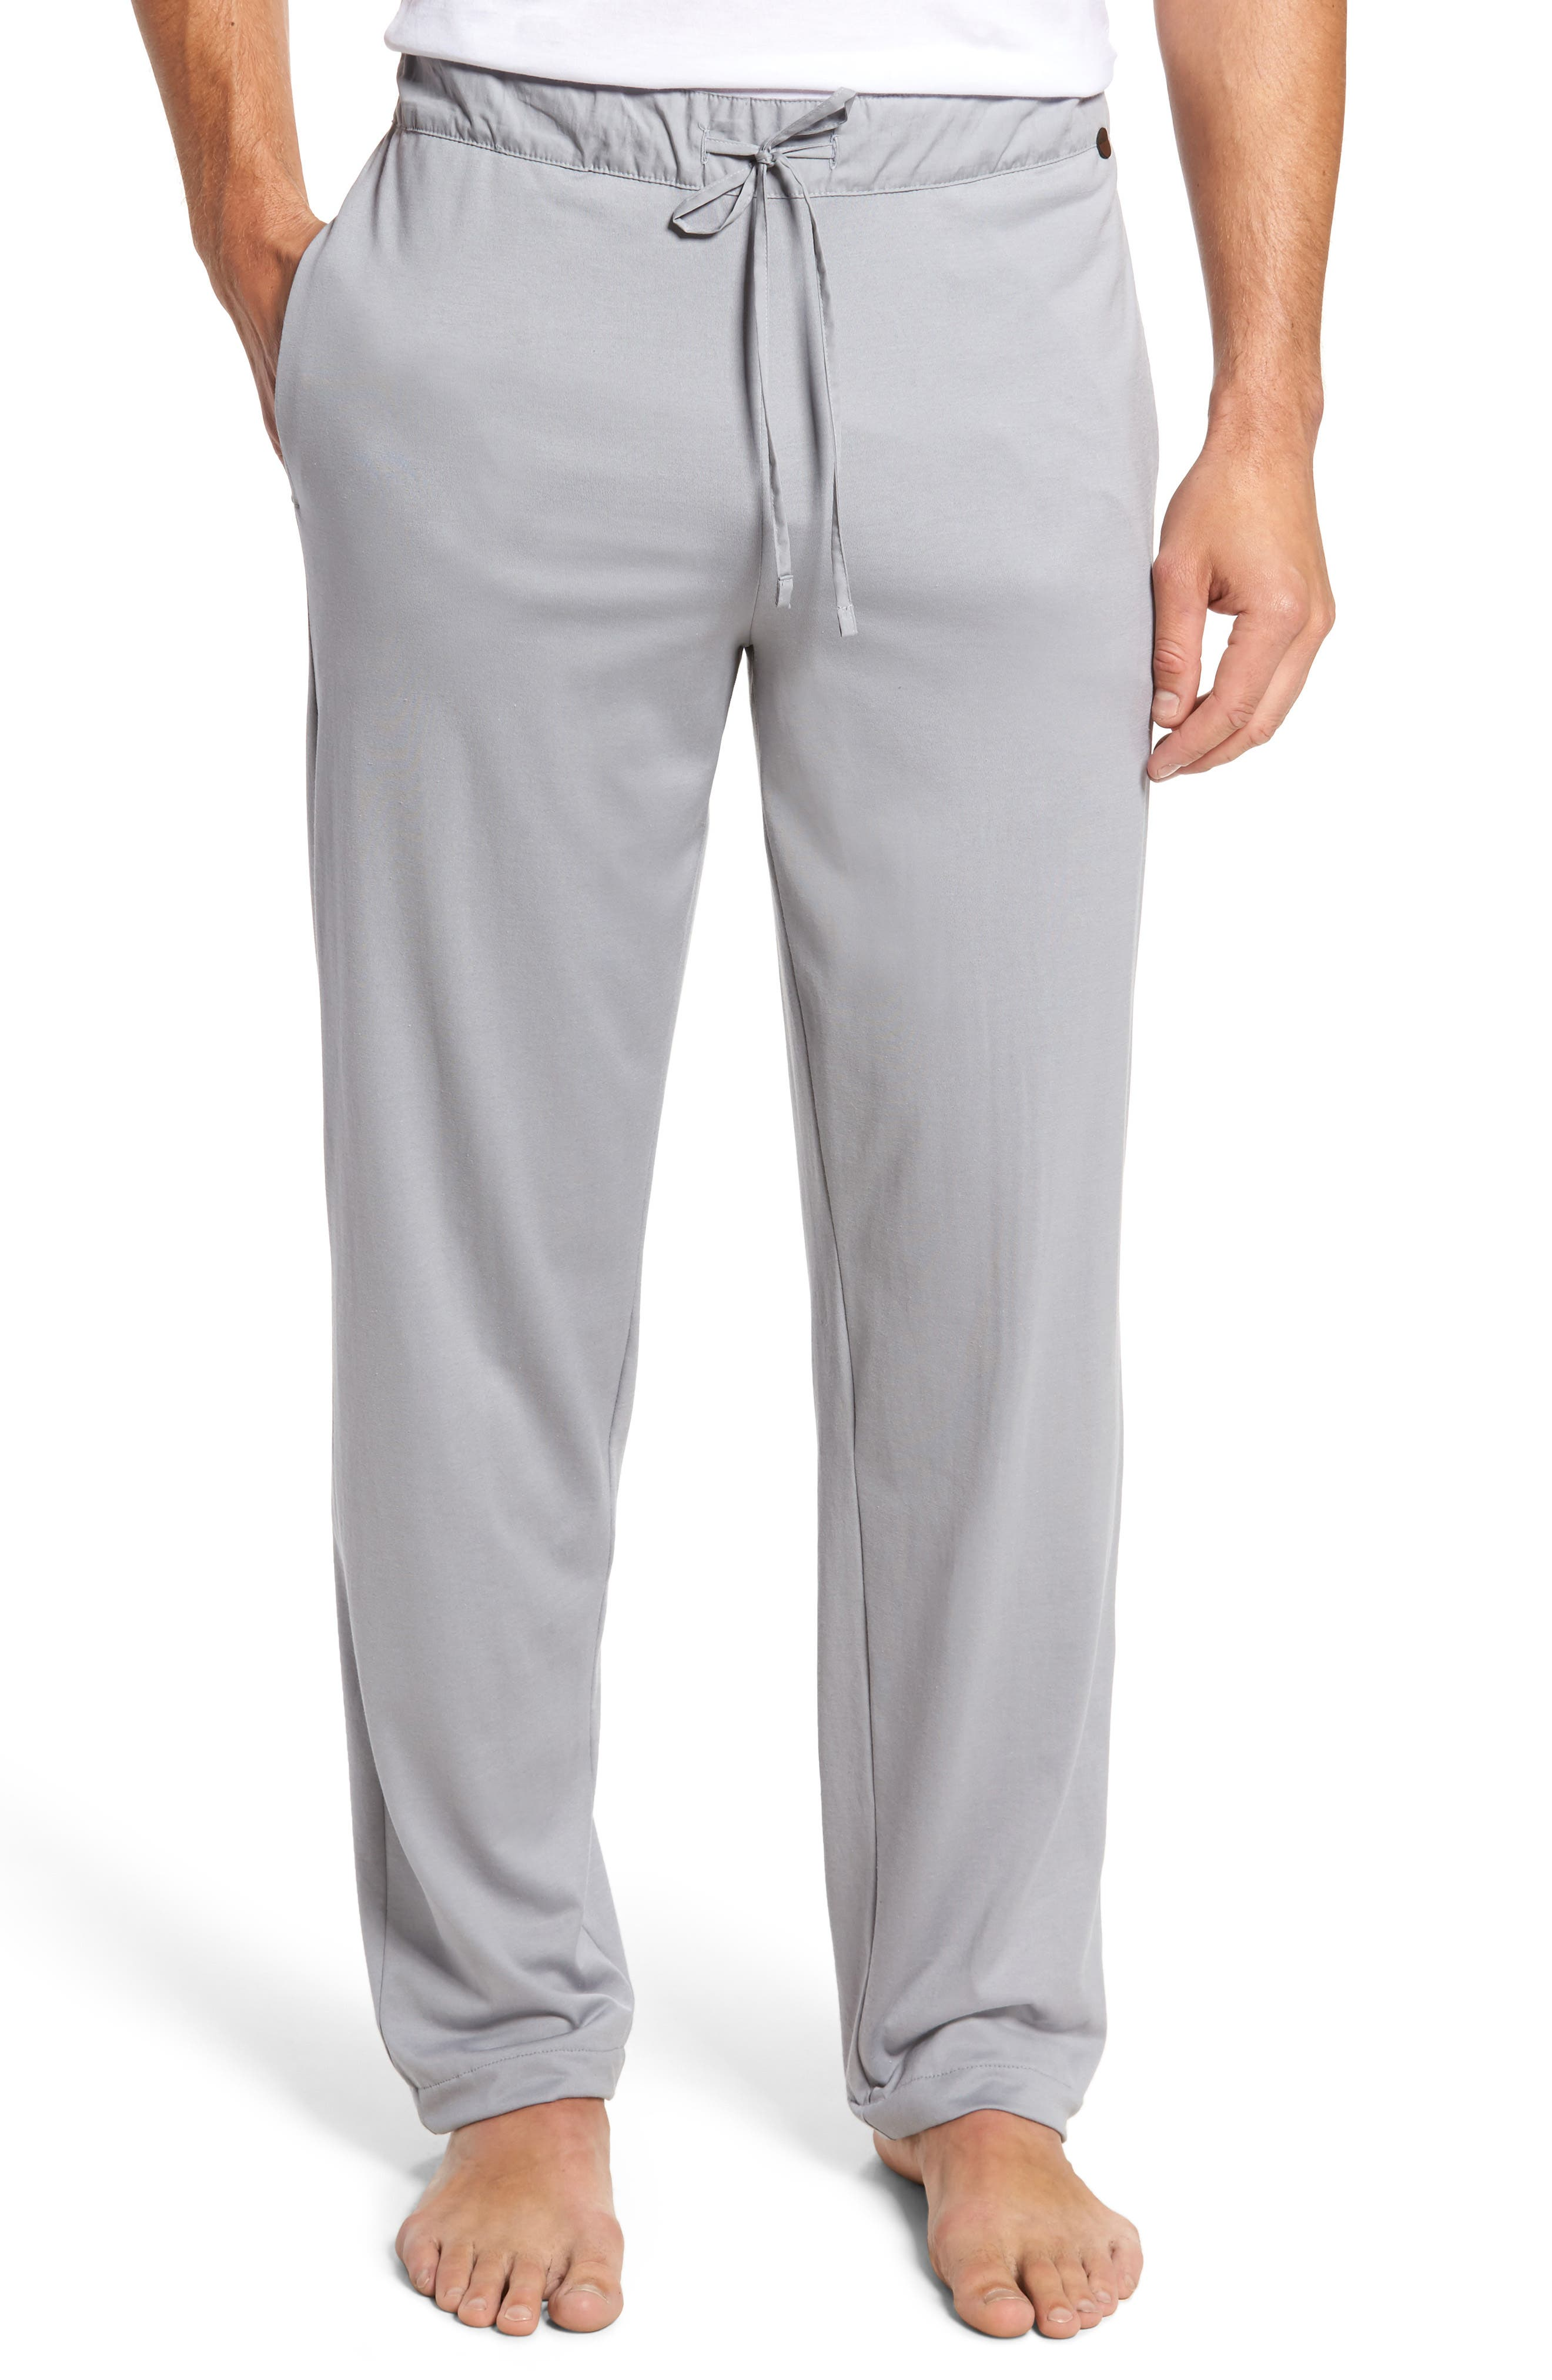 Night & Day Knit Lounge Pants,                             Main thumbnail 1, color,                             Mineral